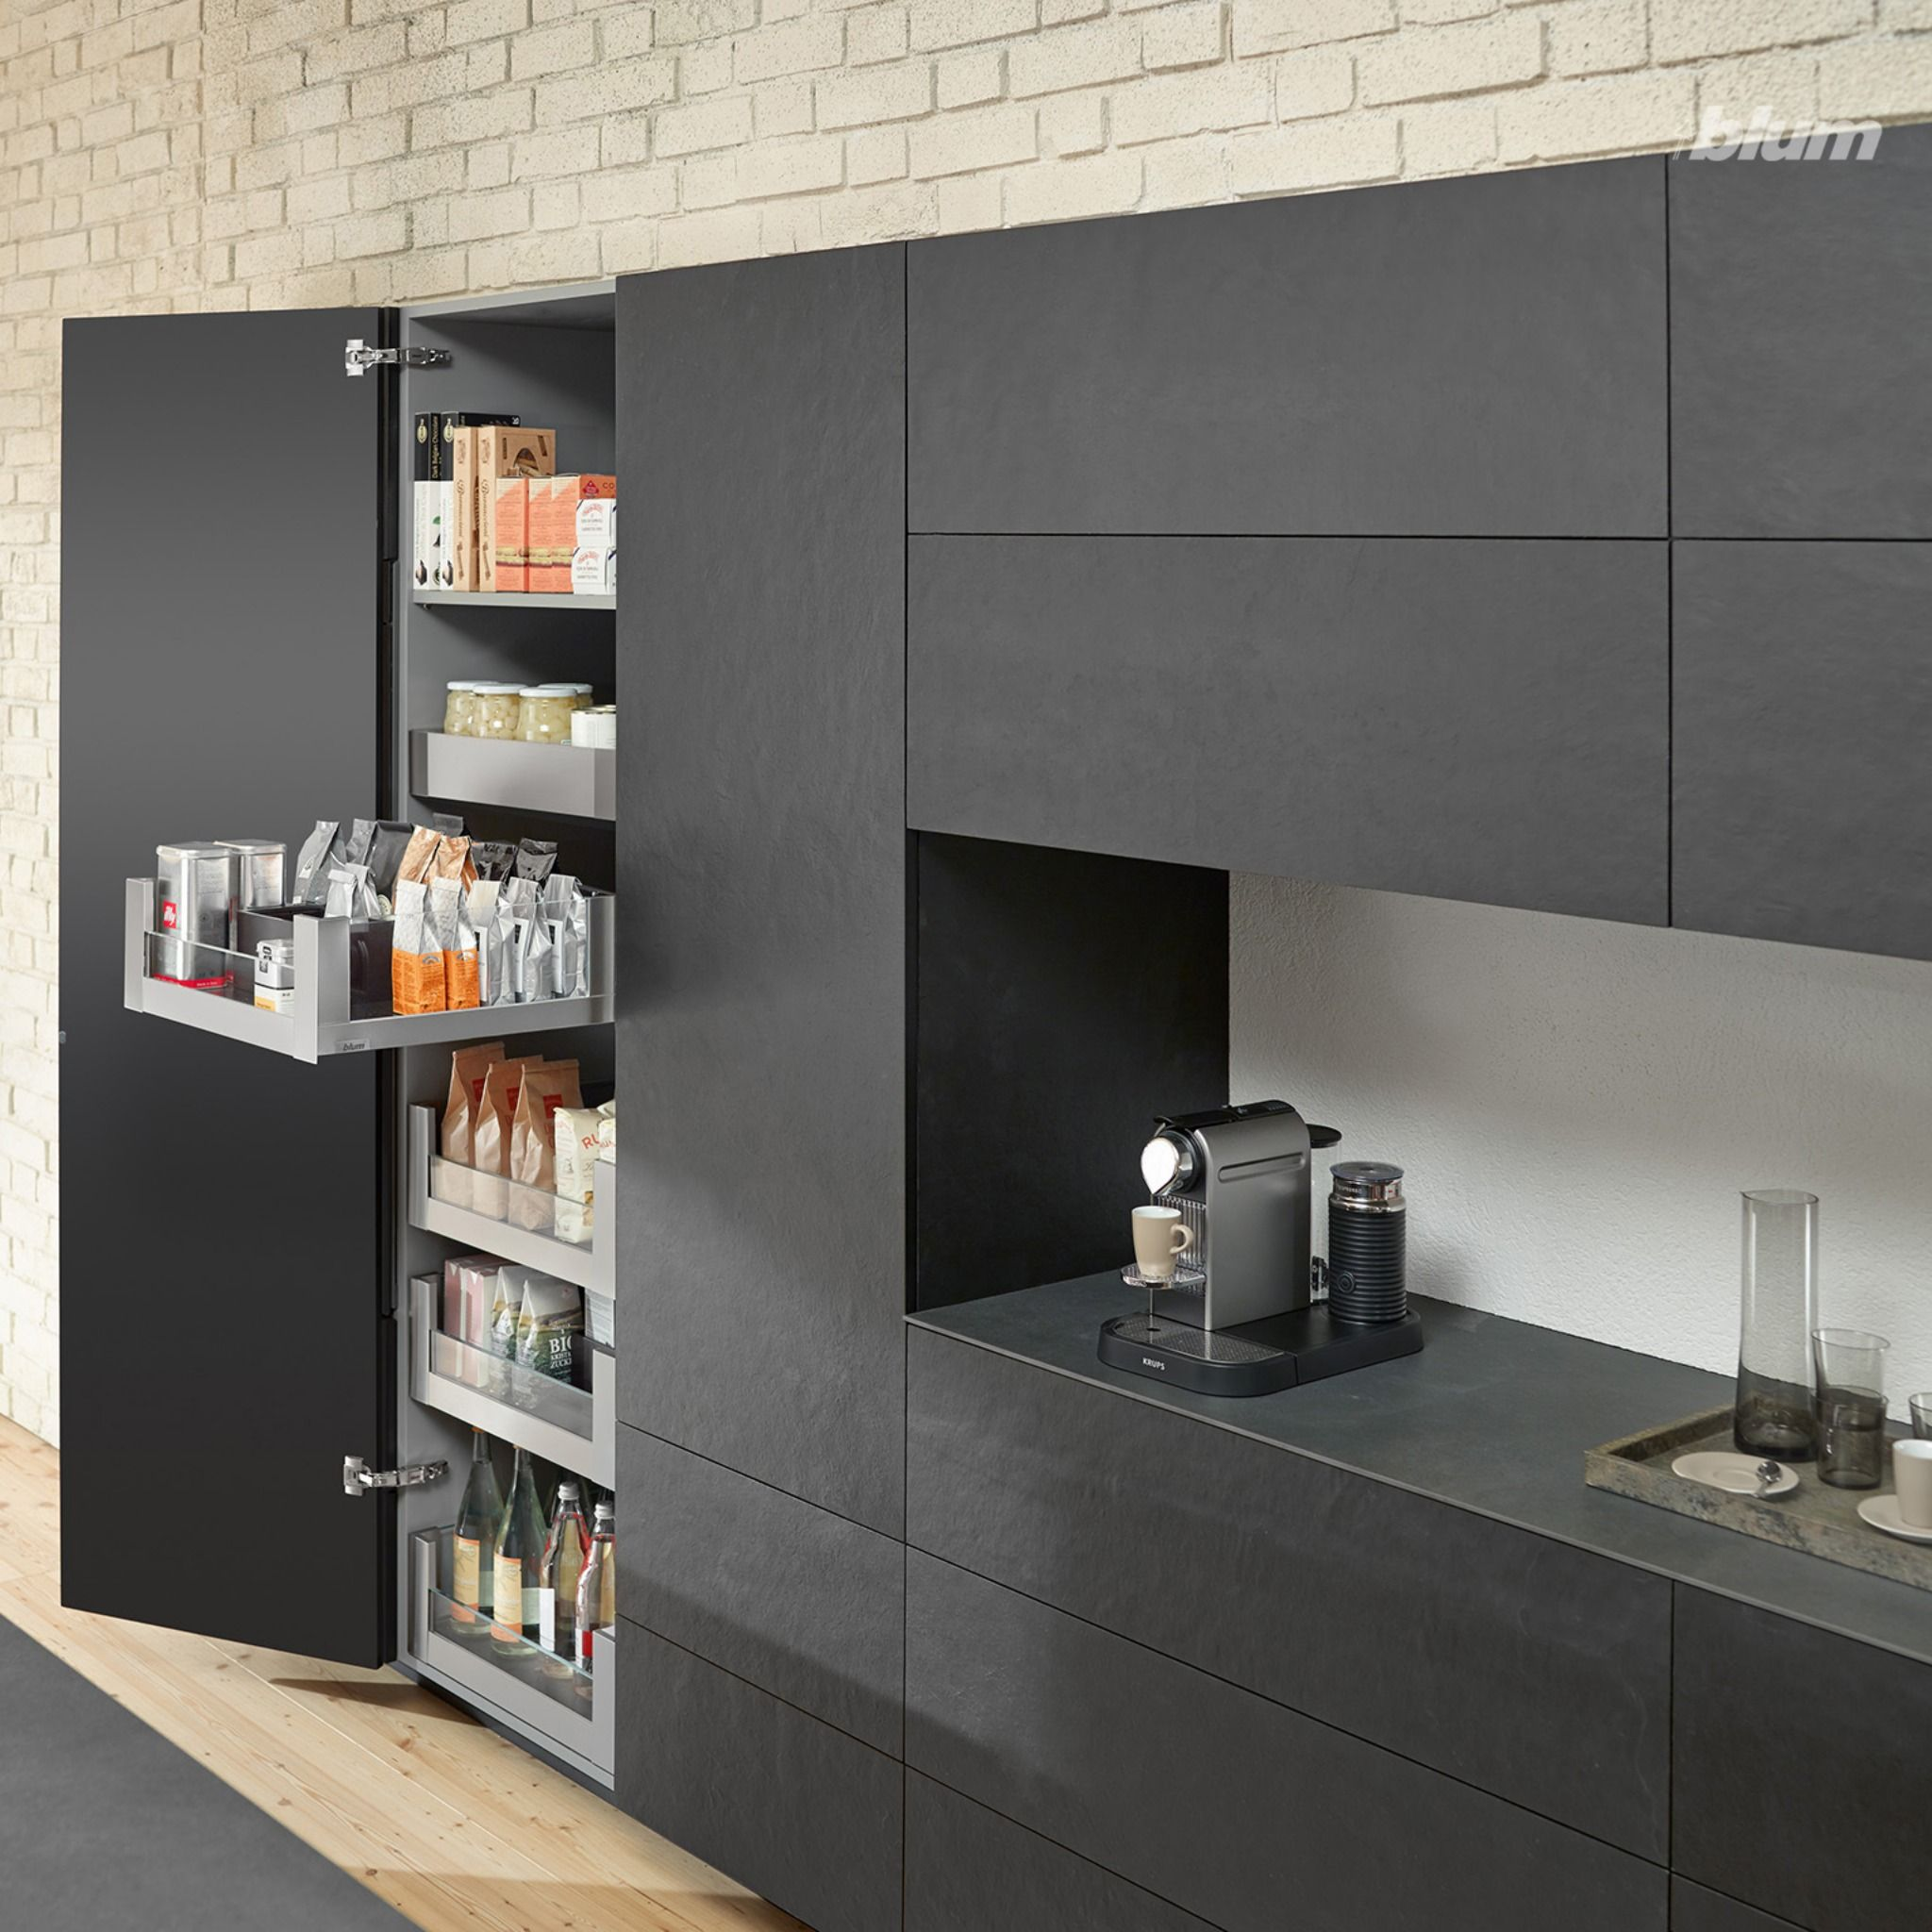 Black Kitchen Island With Handle Less Kitchen Cabinetry And Soft Closing Drawers Pantry Design Home Built In Pantry